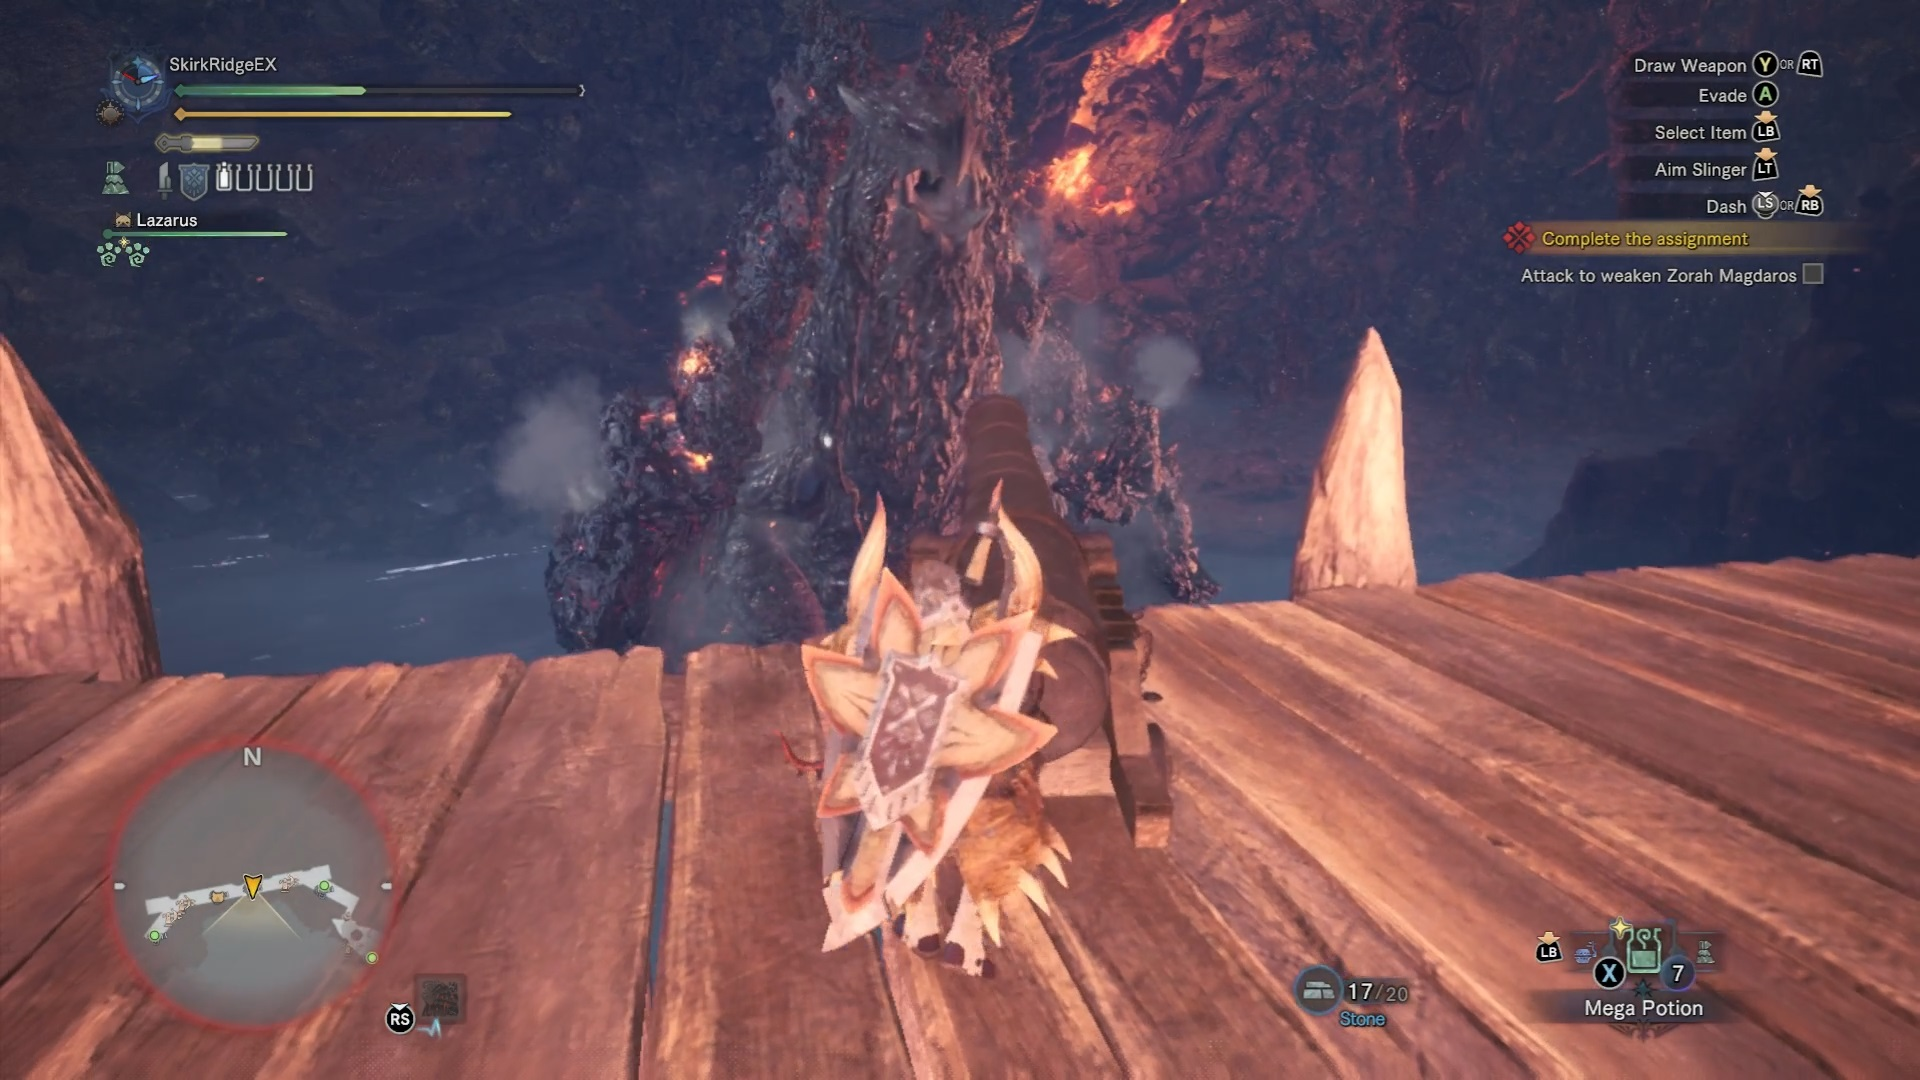 Hunter is lining up the cannon to shoot at Zorah Magdaros